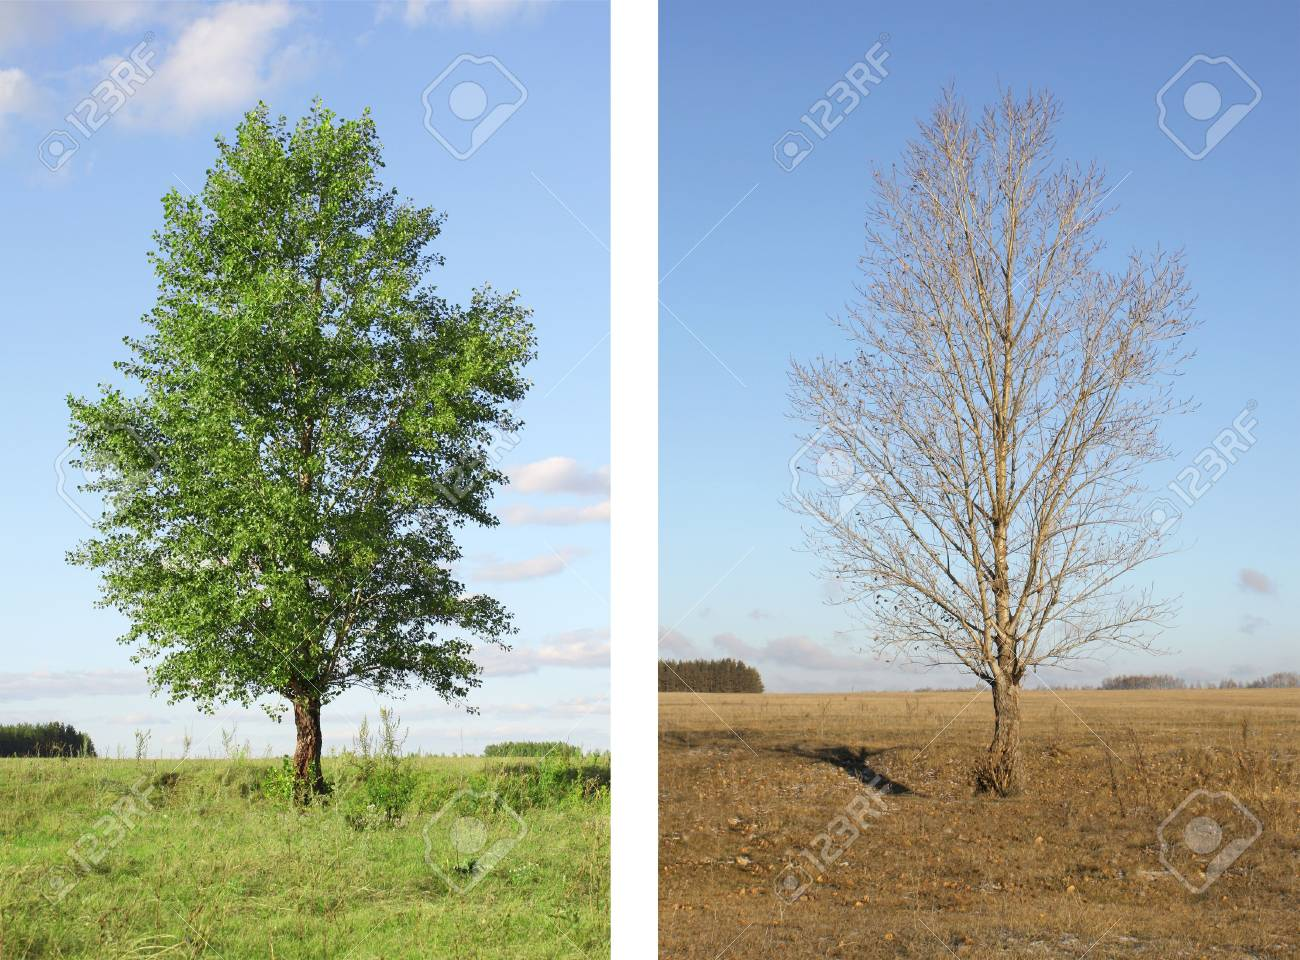 Two seasons - summer and autumn Stock Photo - 6071323